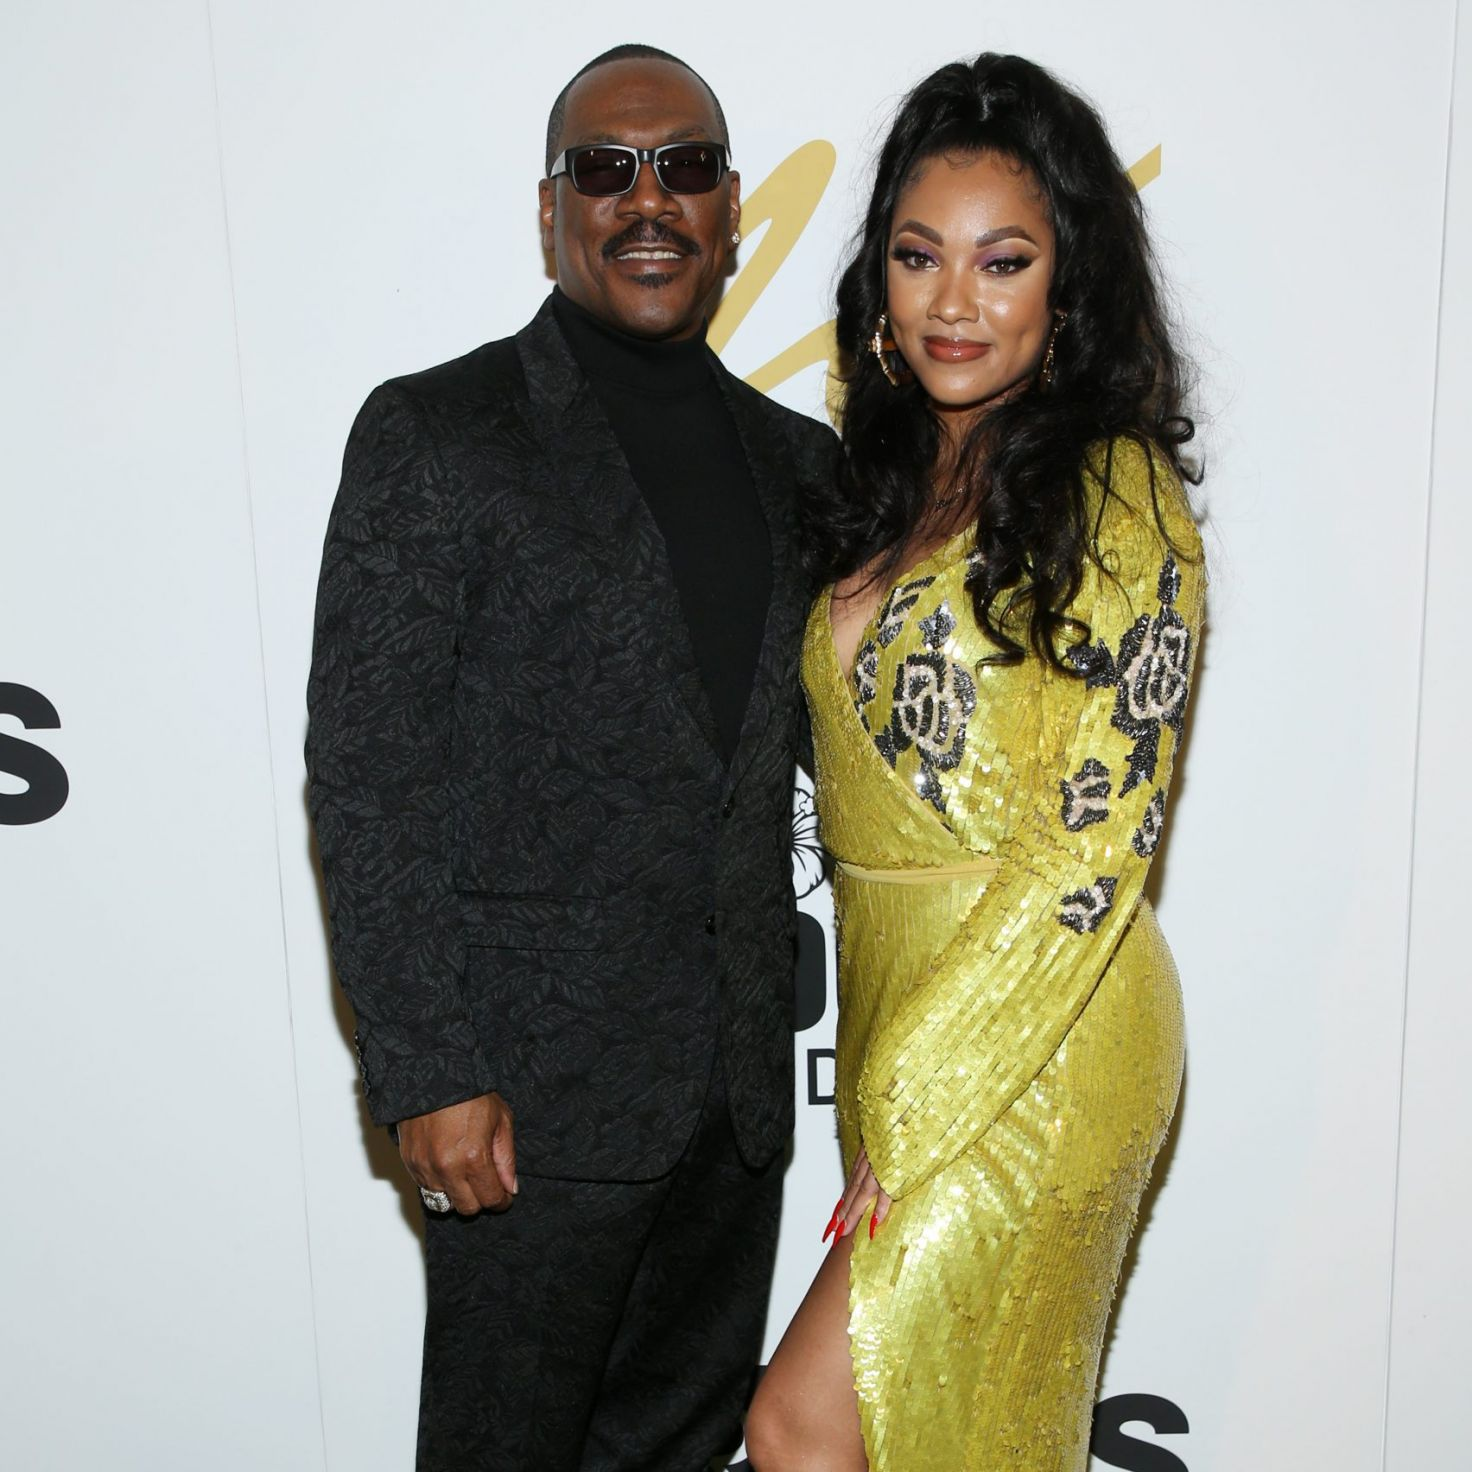 Eddie Murphy, Bria Murphy, Tina Knowles-Lawson And More Celebs Out And About